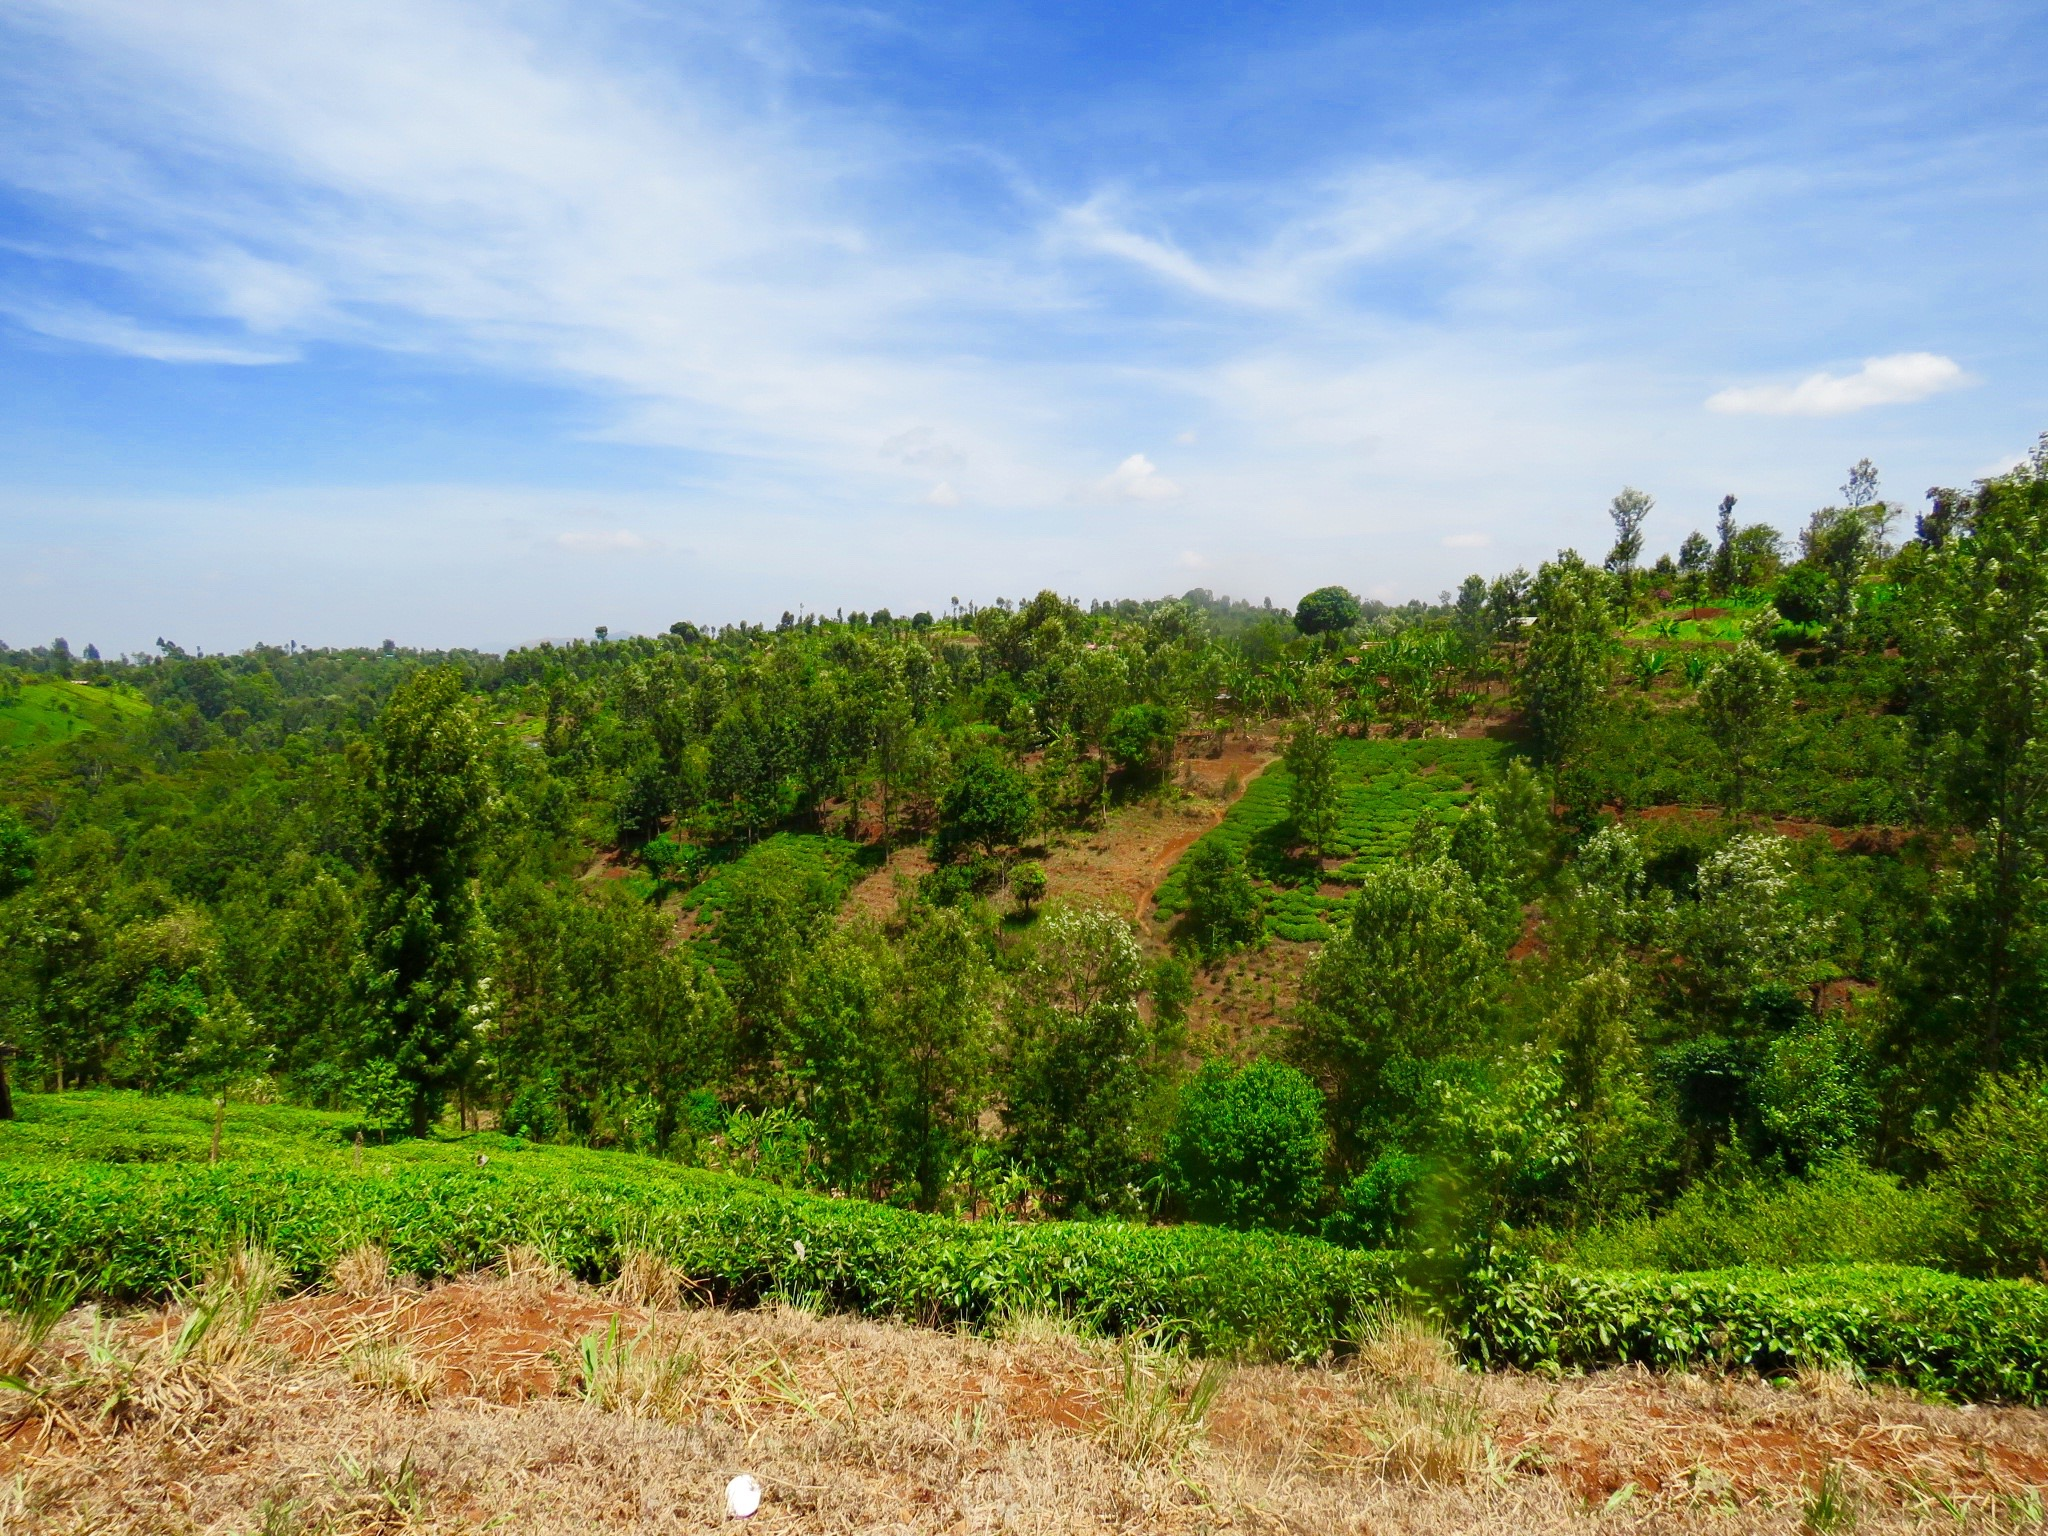 A typical scene of the lush farmlands set on the slopes of Chogoria